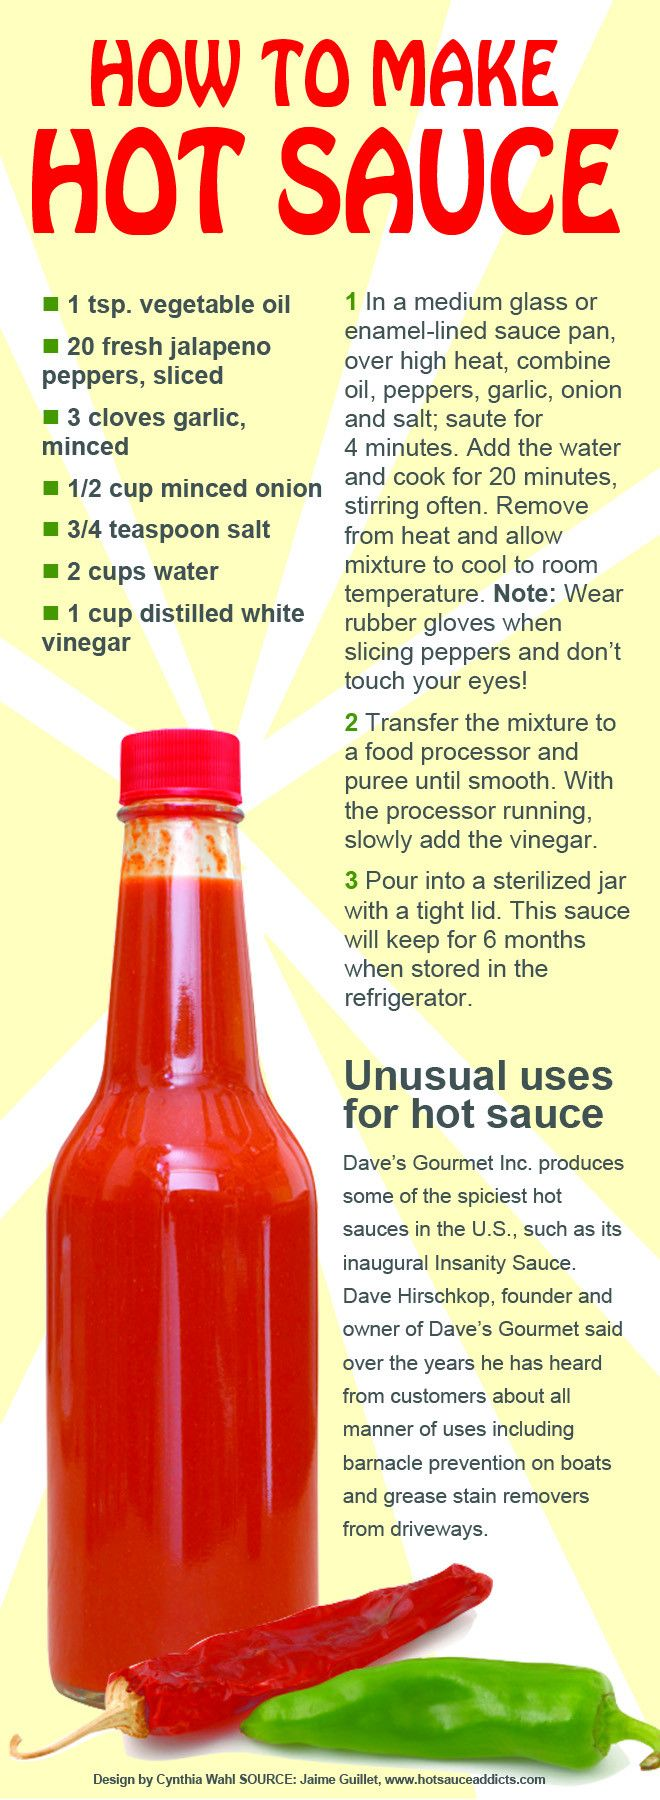 How to Bottle and Sell Your Own Hot Sauce | eHow